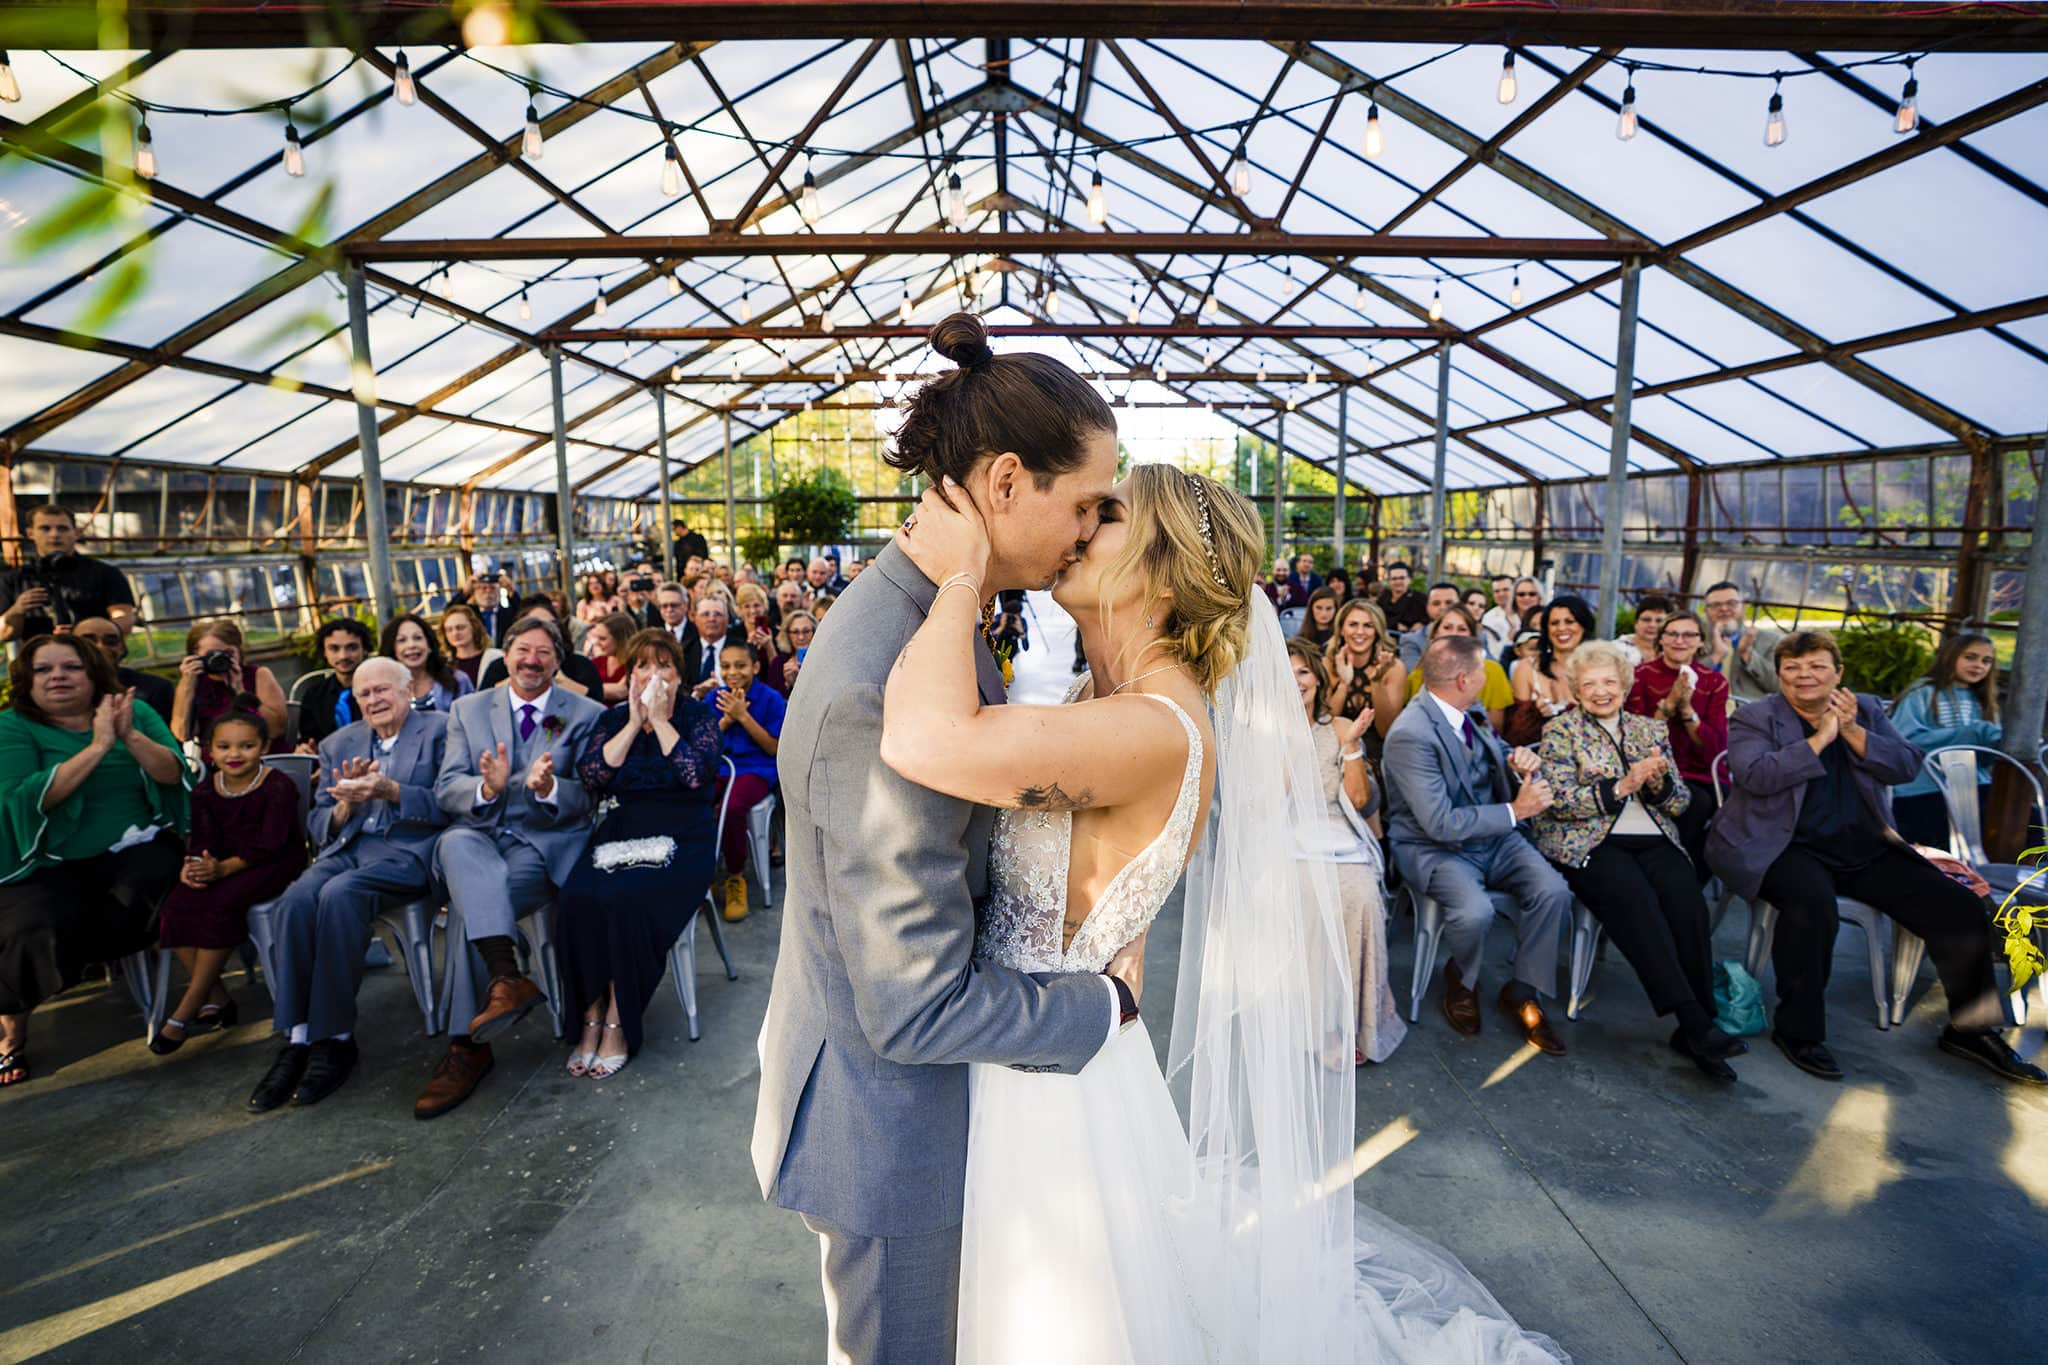 Bride and groom kiss in modern greenhouse wedding